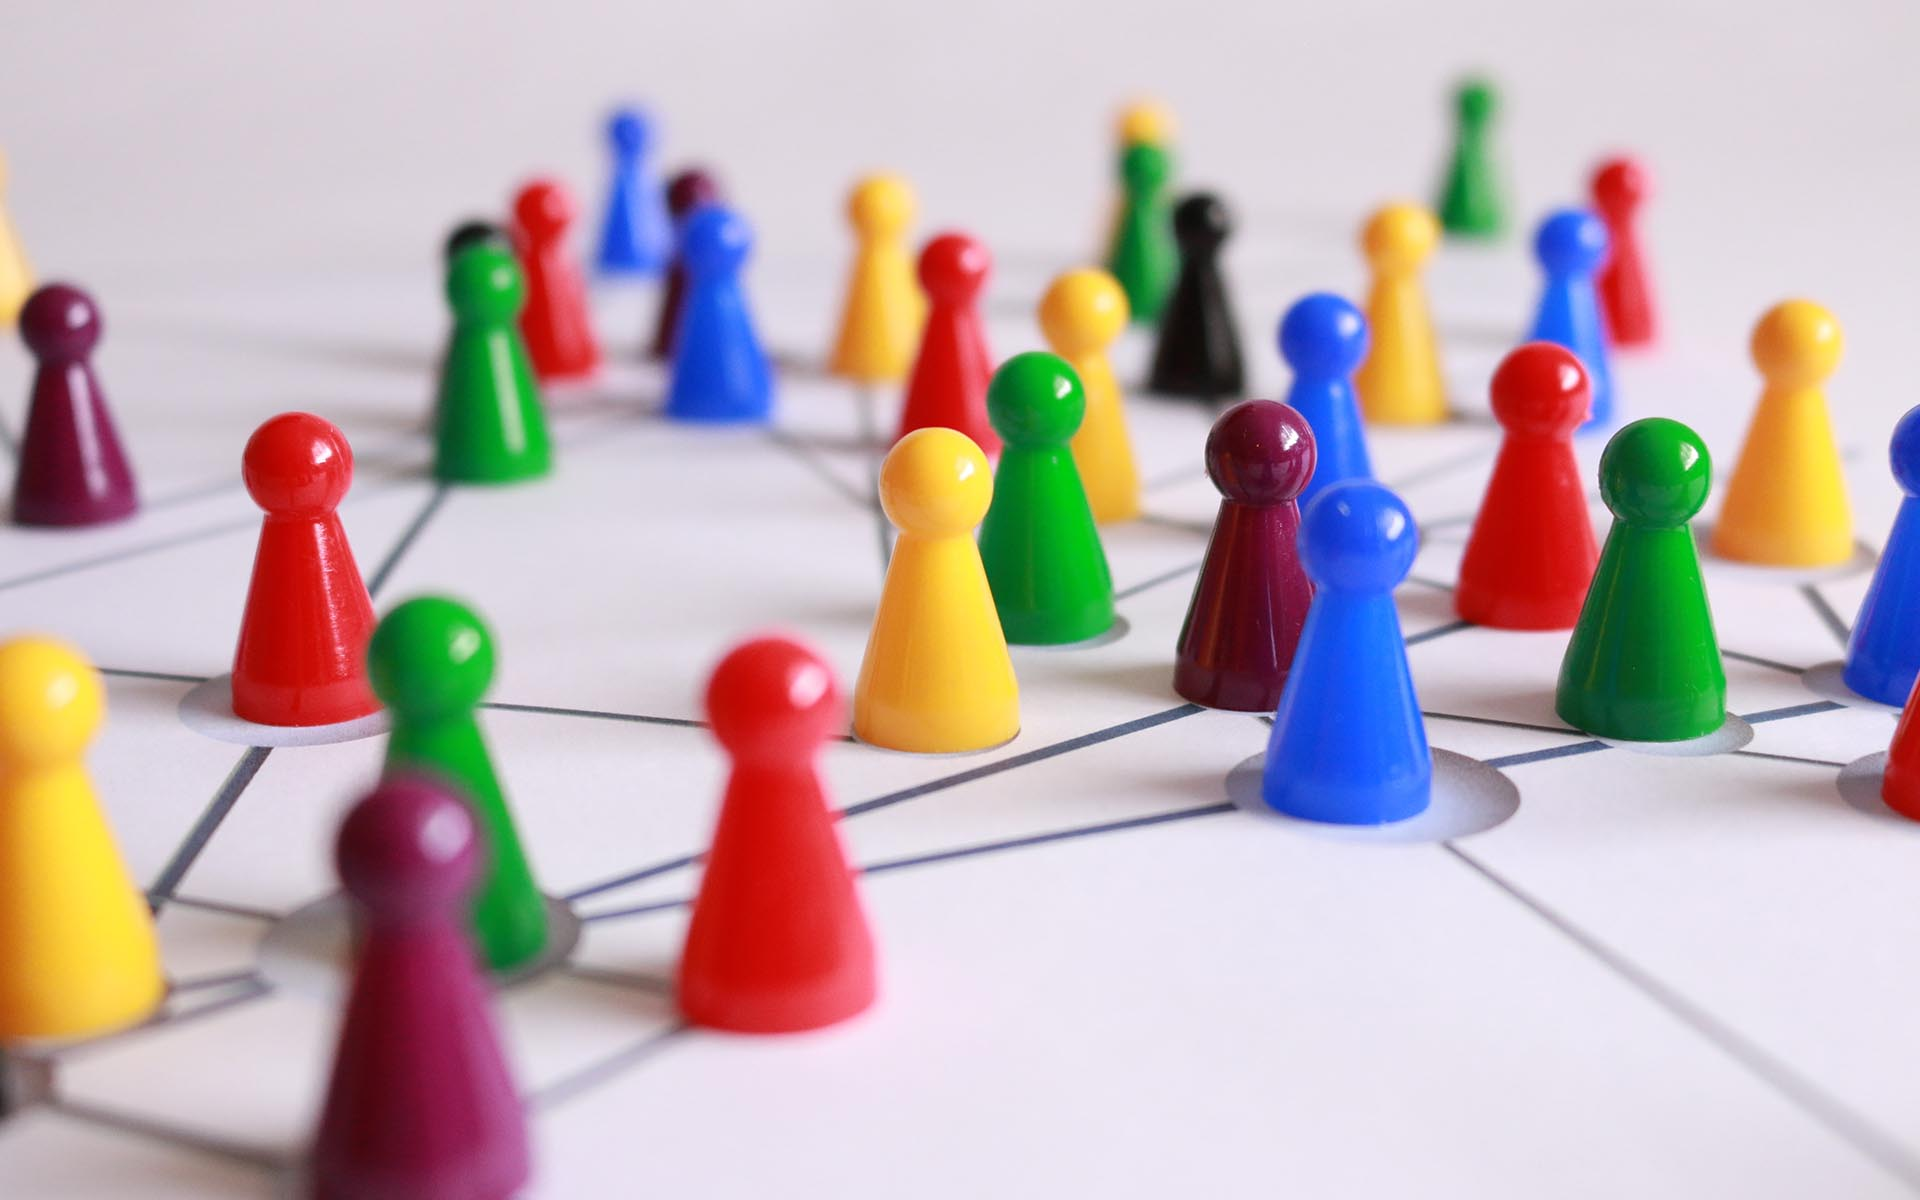 Picture of multicolored game pieces connected on a lined surface to accompany blog on International Networking Week.